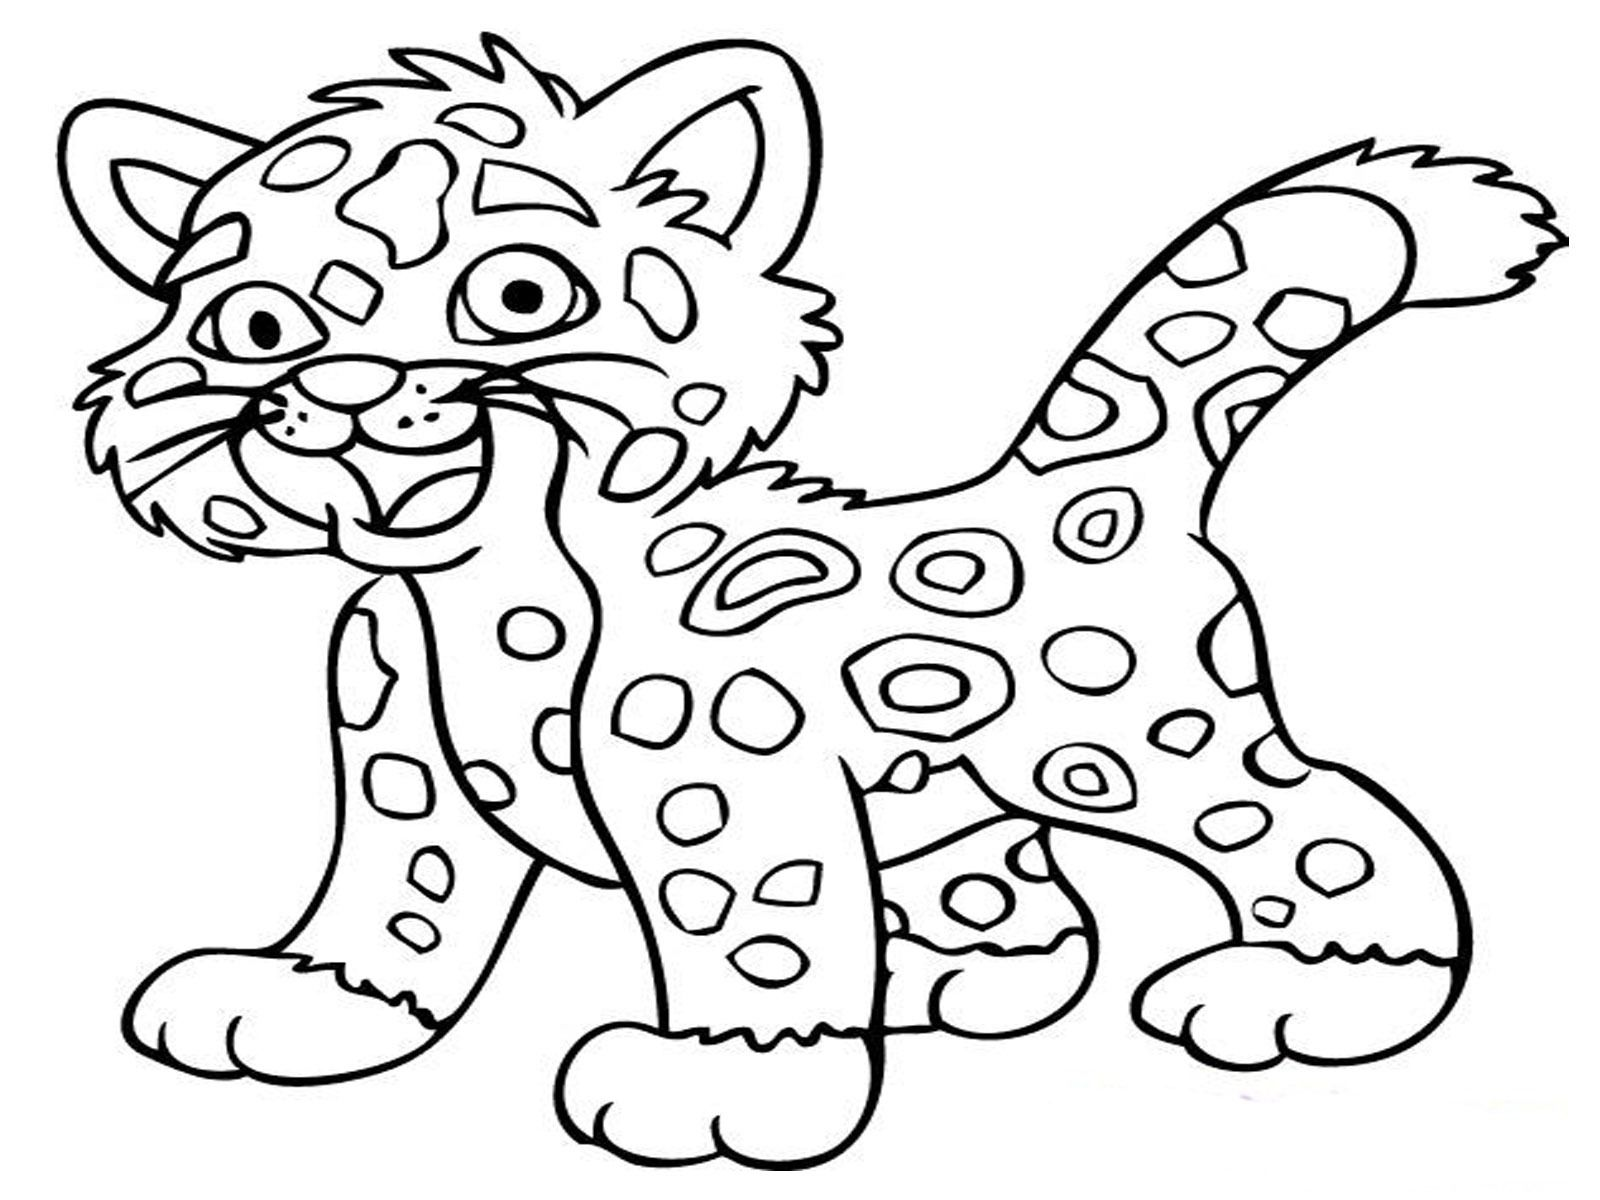 Pin By Peggy Urell On Twos Classroom Lion Coloring Pages Zoo Animal Coloring Pages Free Printable Coloring Pages